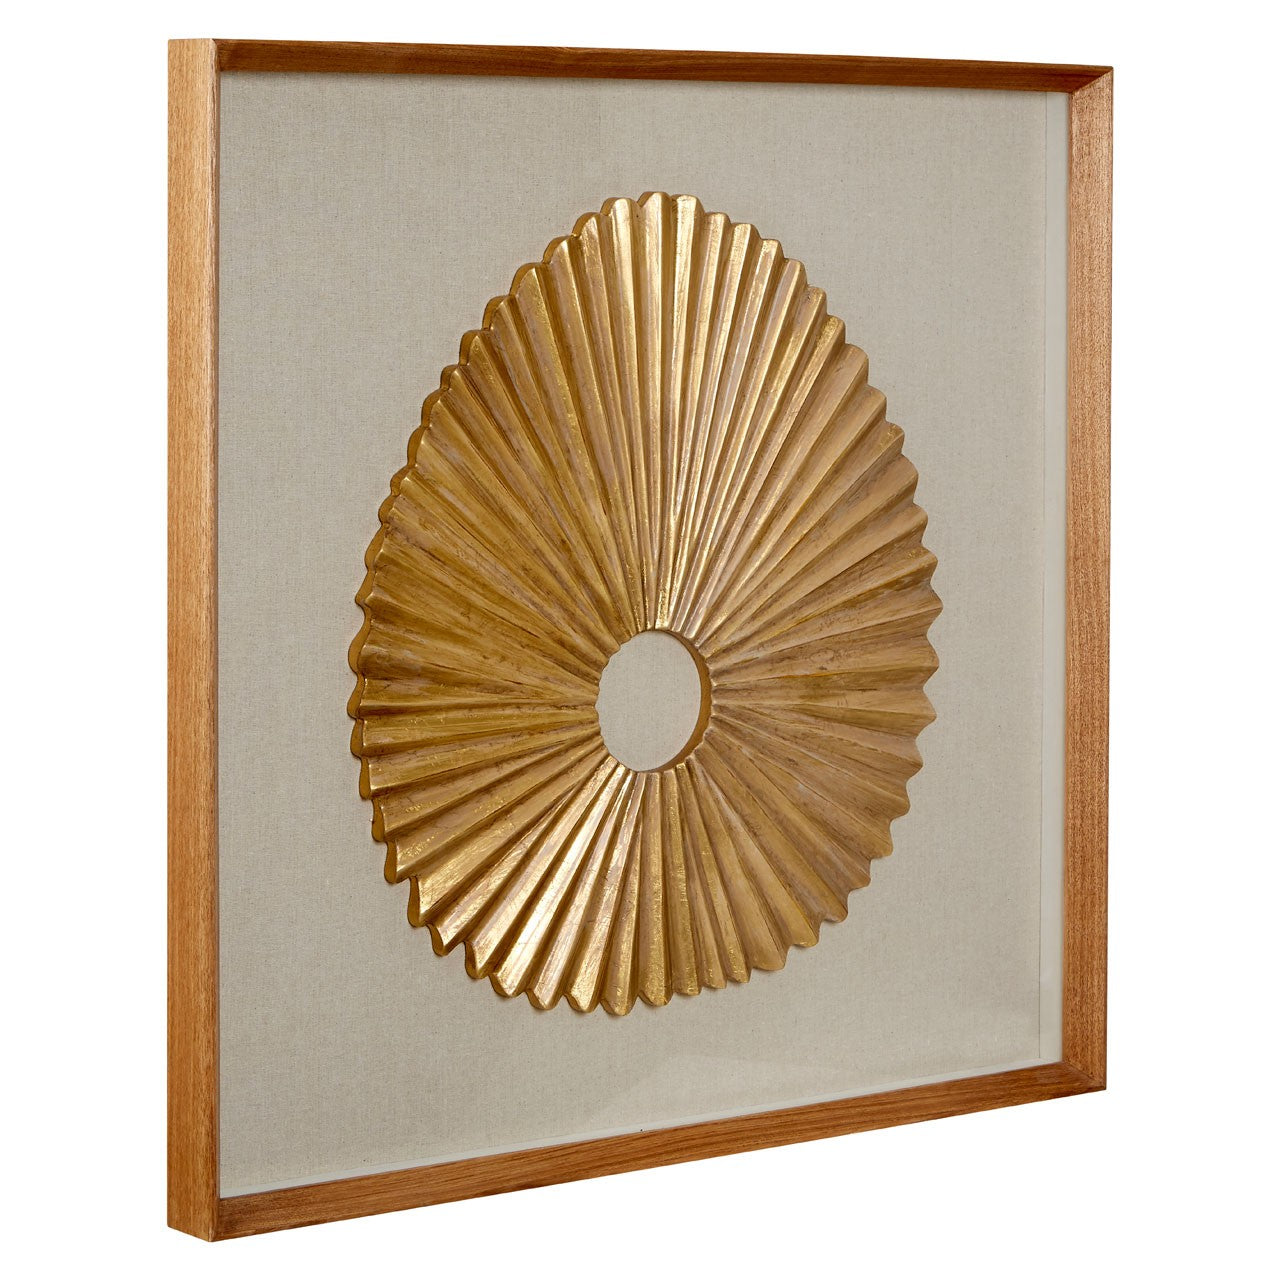 Framed Oval Fan Carving Wall Art